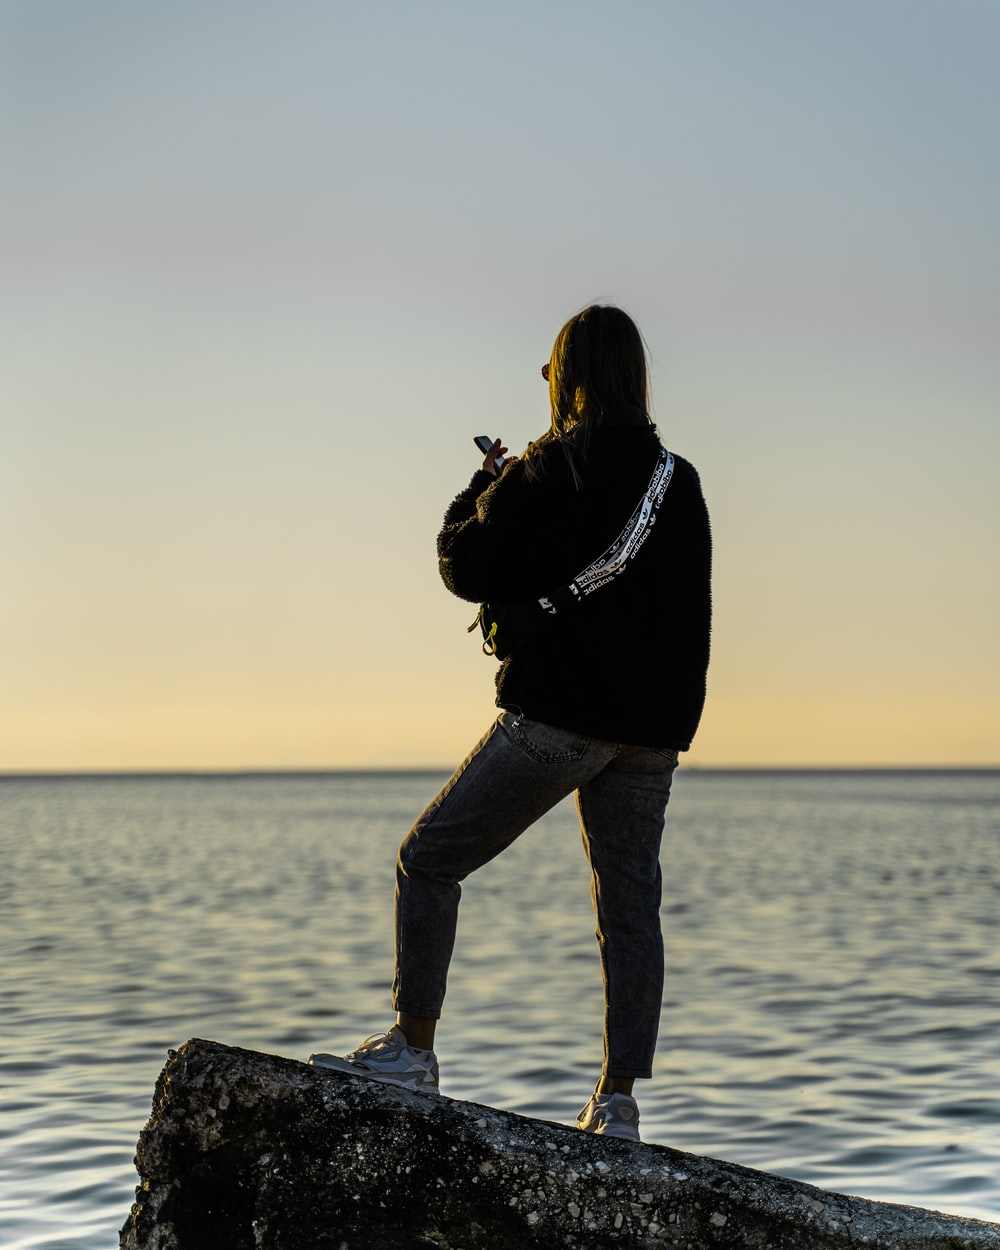 woman in black jacket and blue denim jeans standing on rock near body of water during